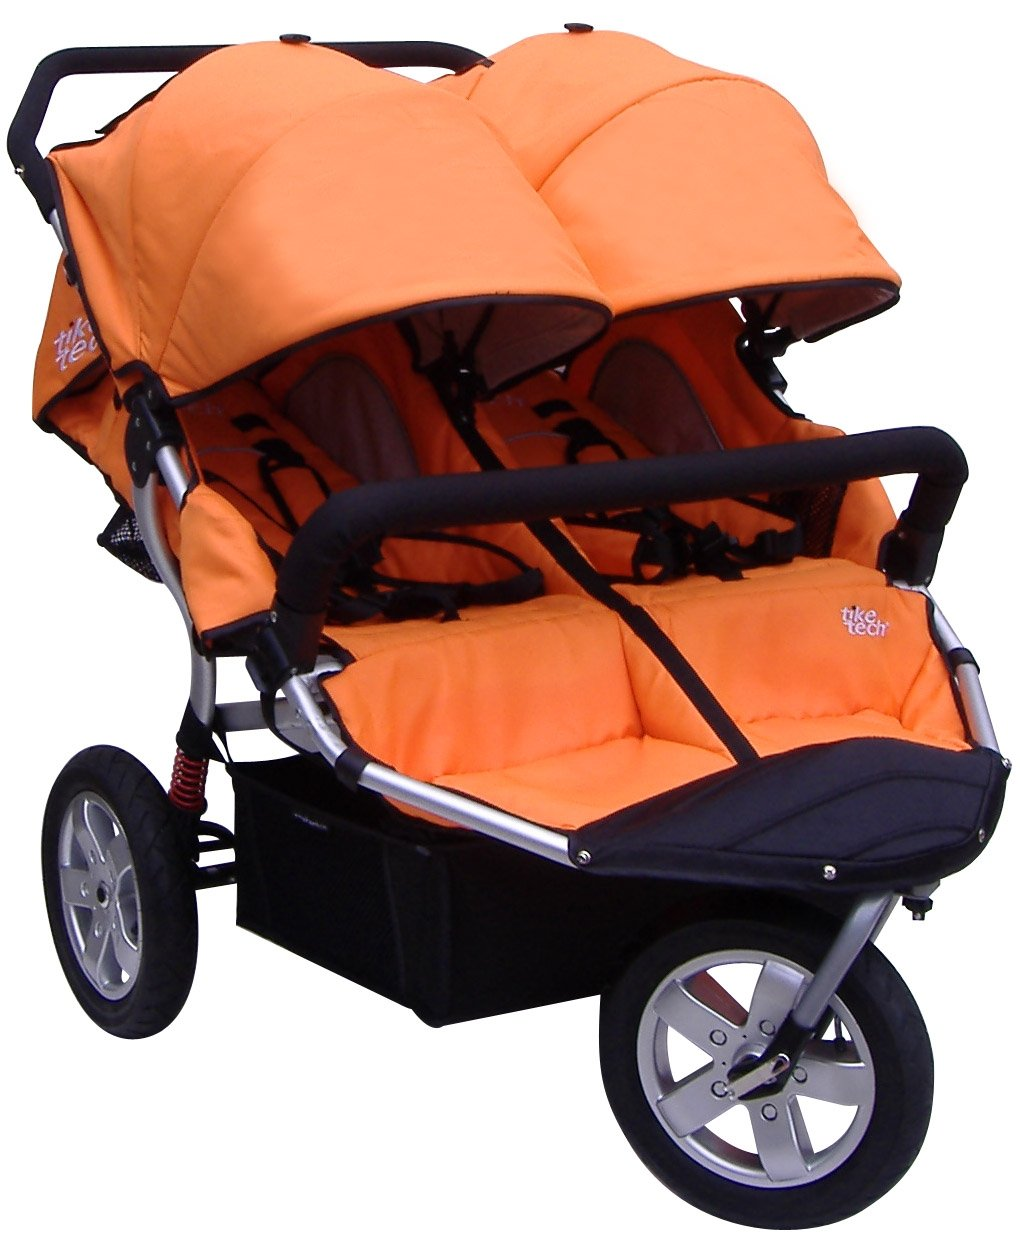 Tike Tech Double City X3 Swivel Stroller, Autumn Orange